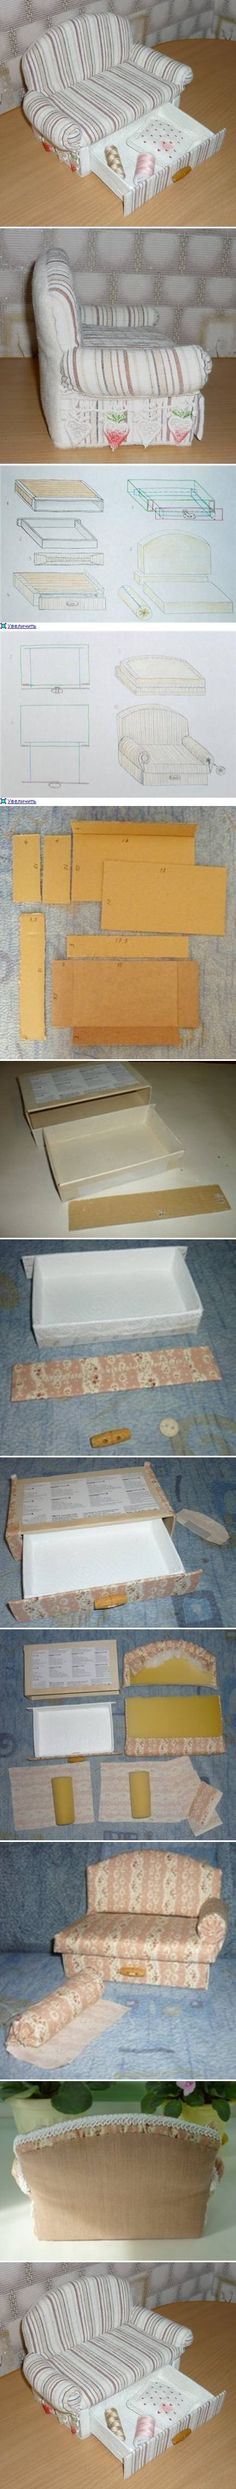 DIY Cardboard Sofa with Drawer DIY Projects